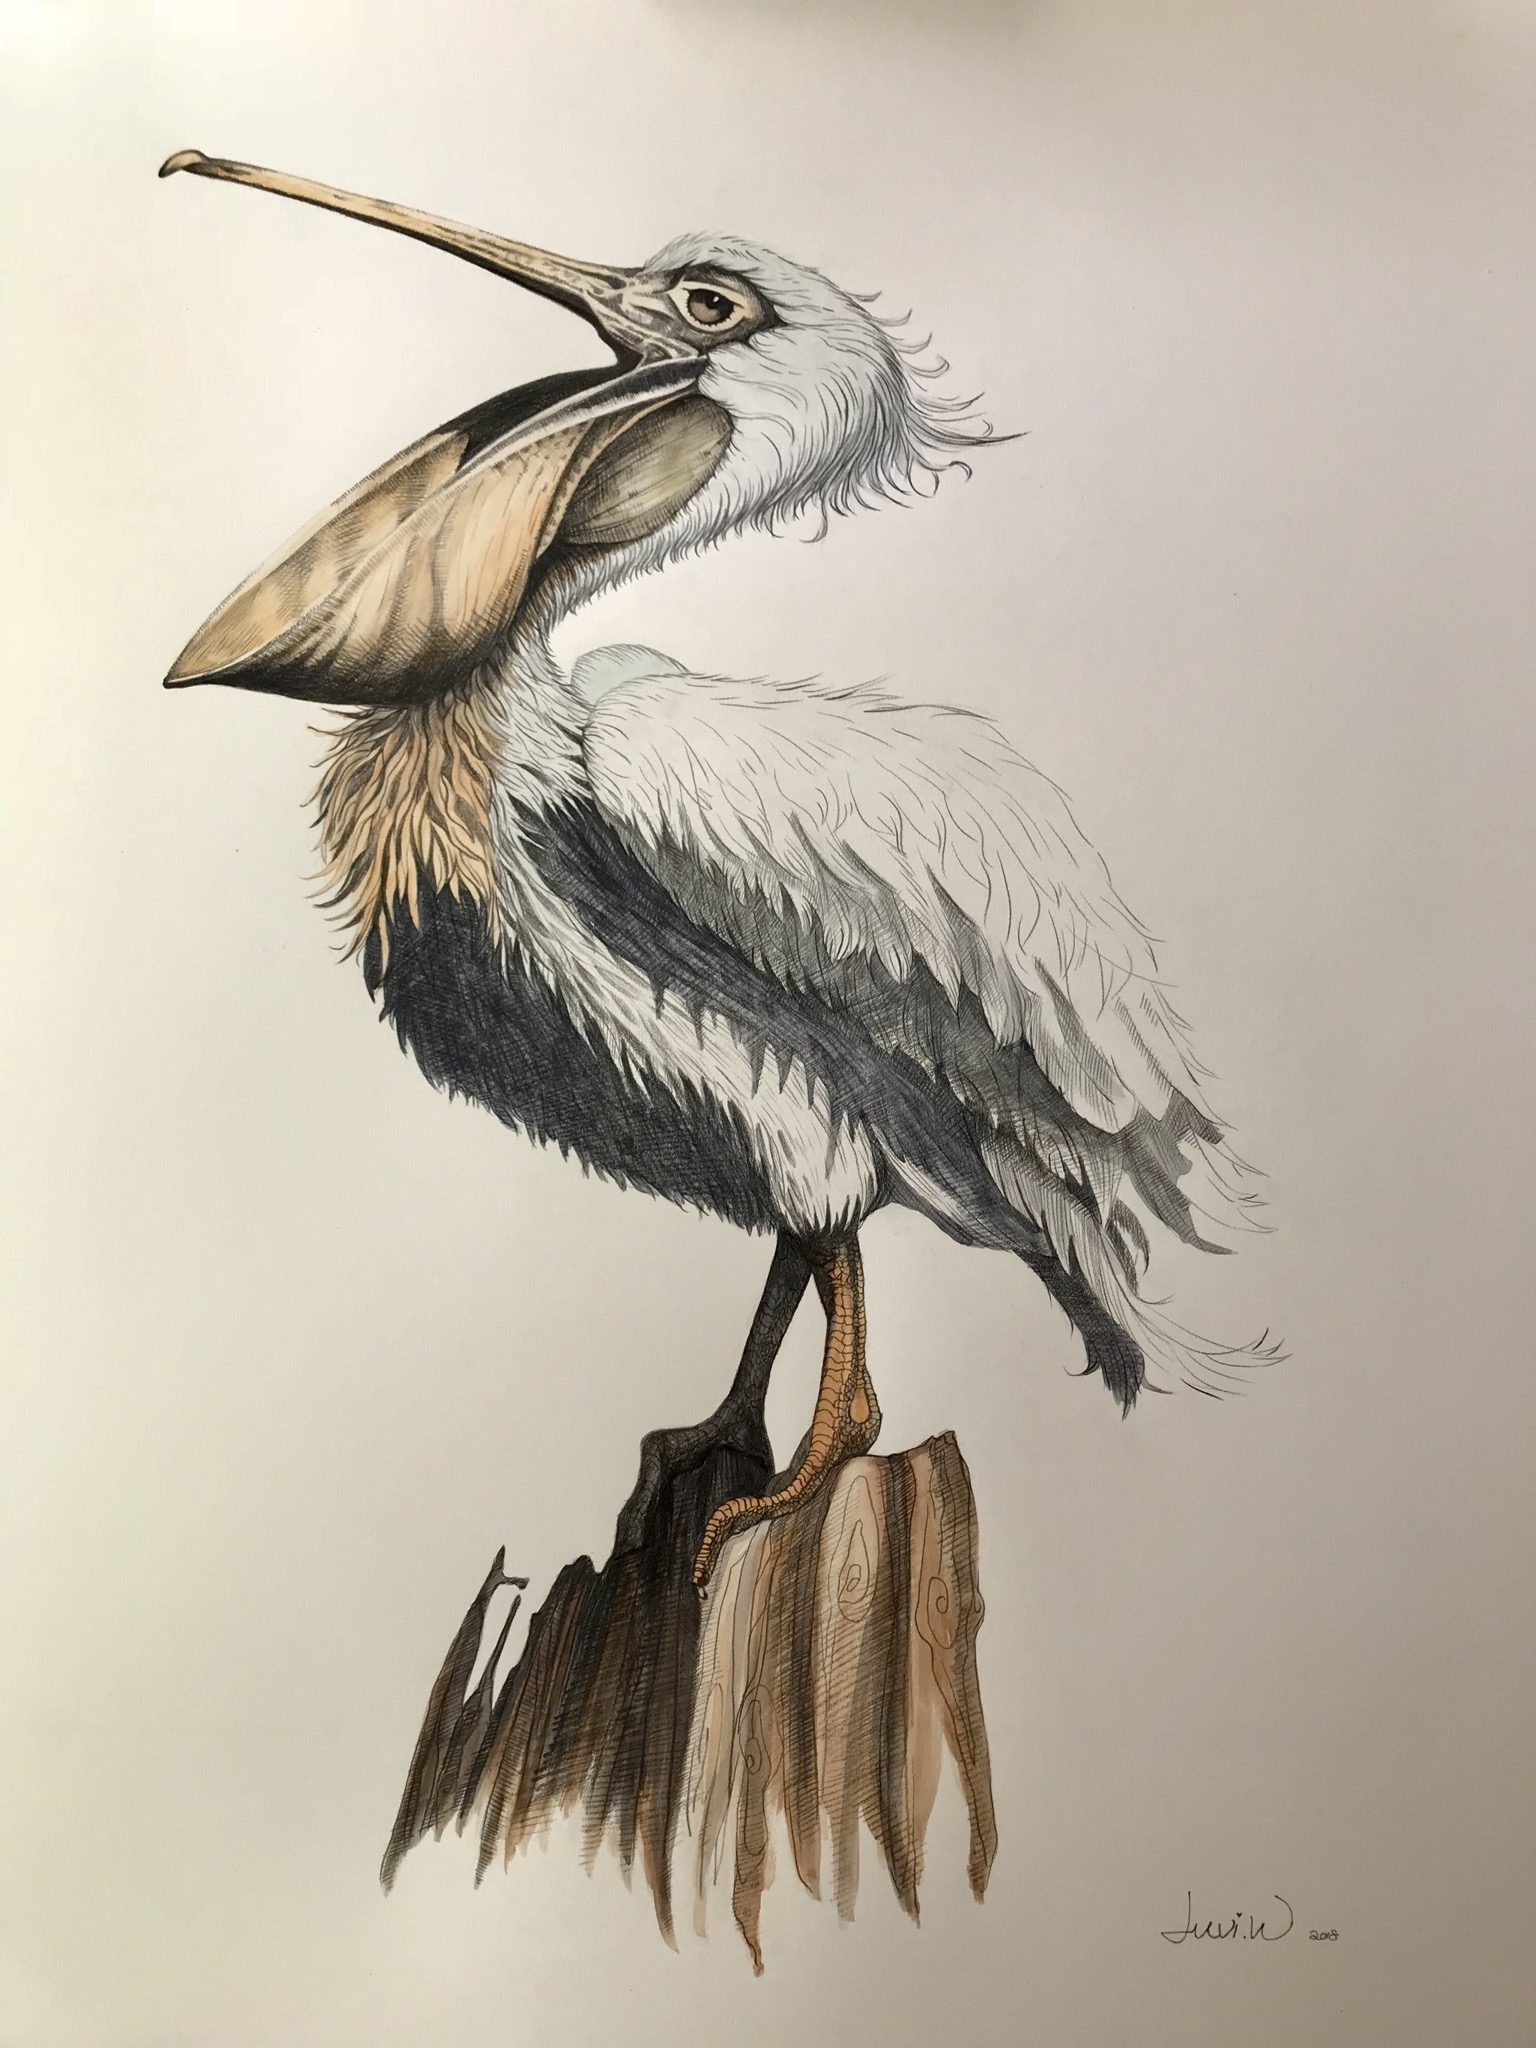 "Pelican 24"" x 36"" pencil & wc"